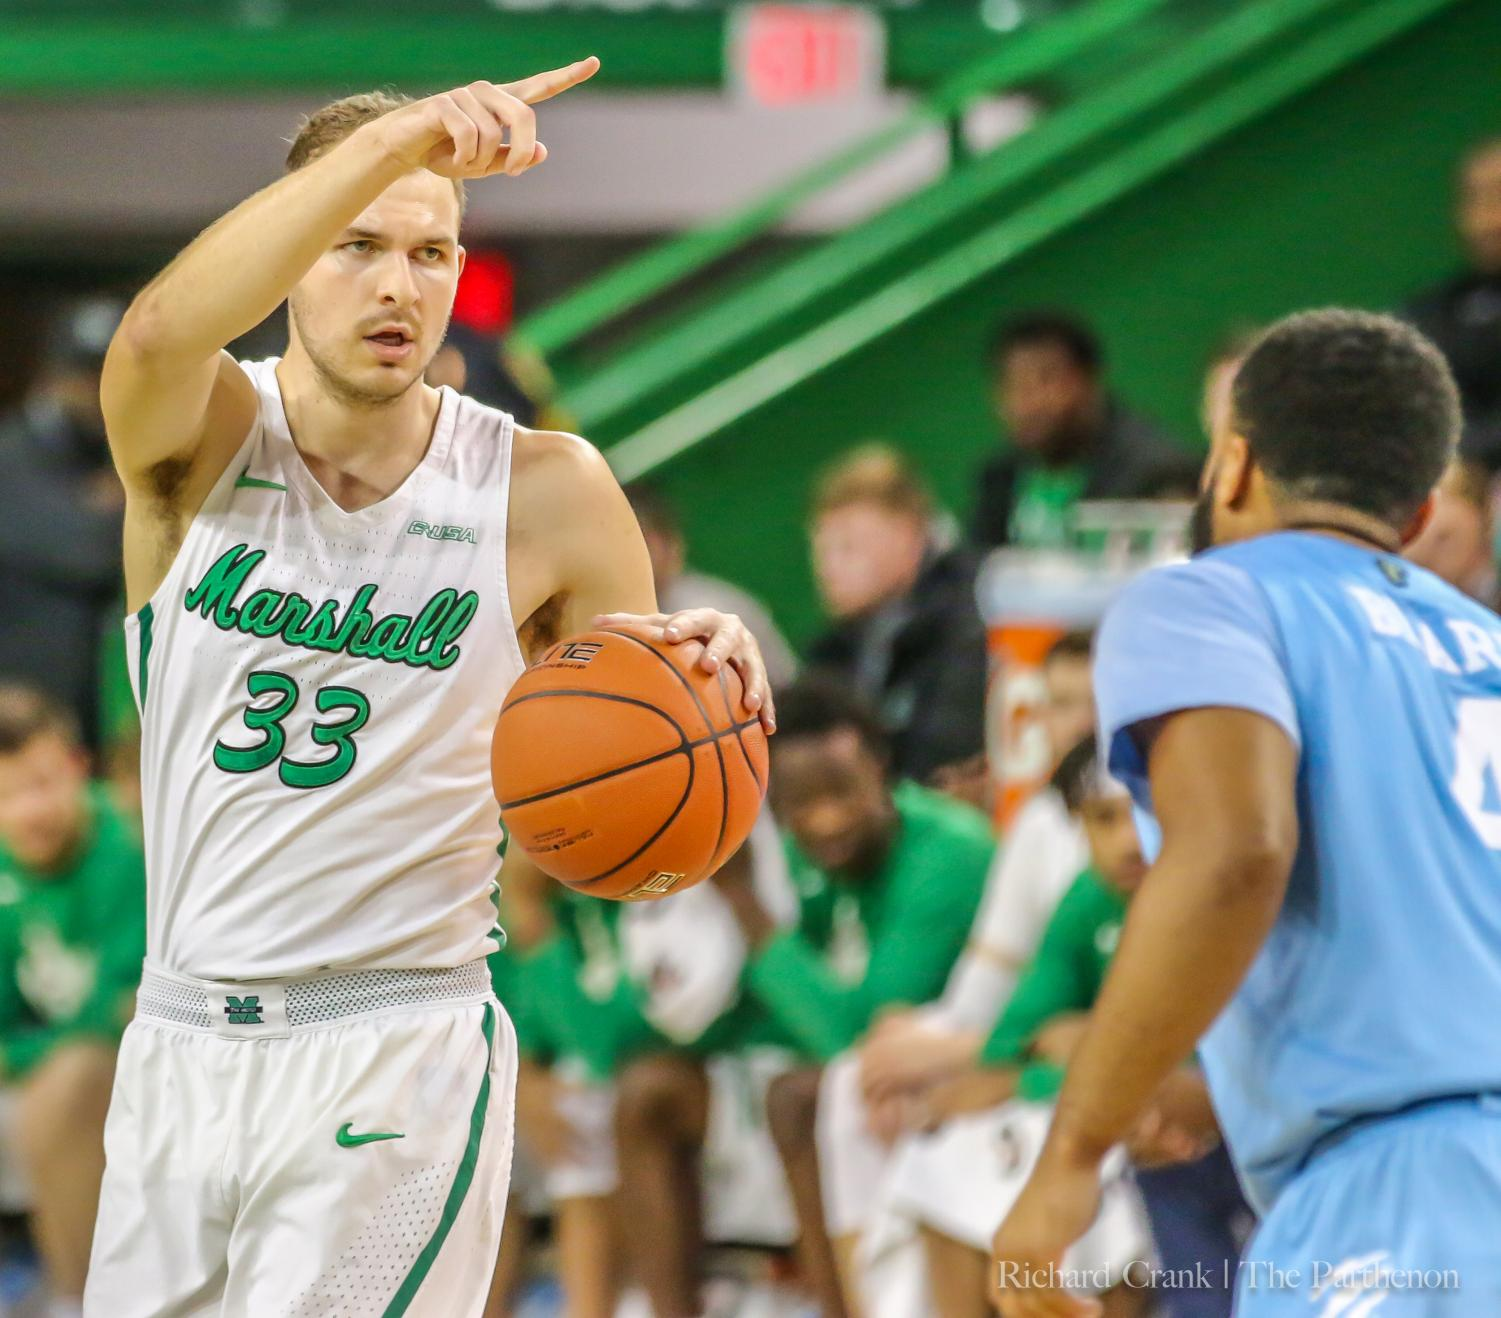 Marshall guard Jon Elmore (33) runs the offense during the Herd's win over FIU at the Cam Henderson Center on January 19, 2019. Elmore was named C-USA Player of the Week on Monday.